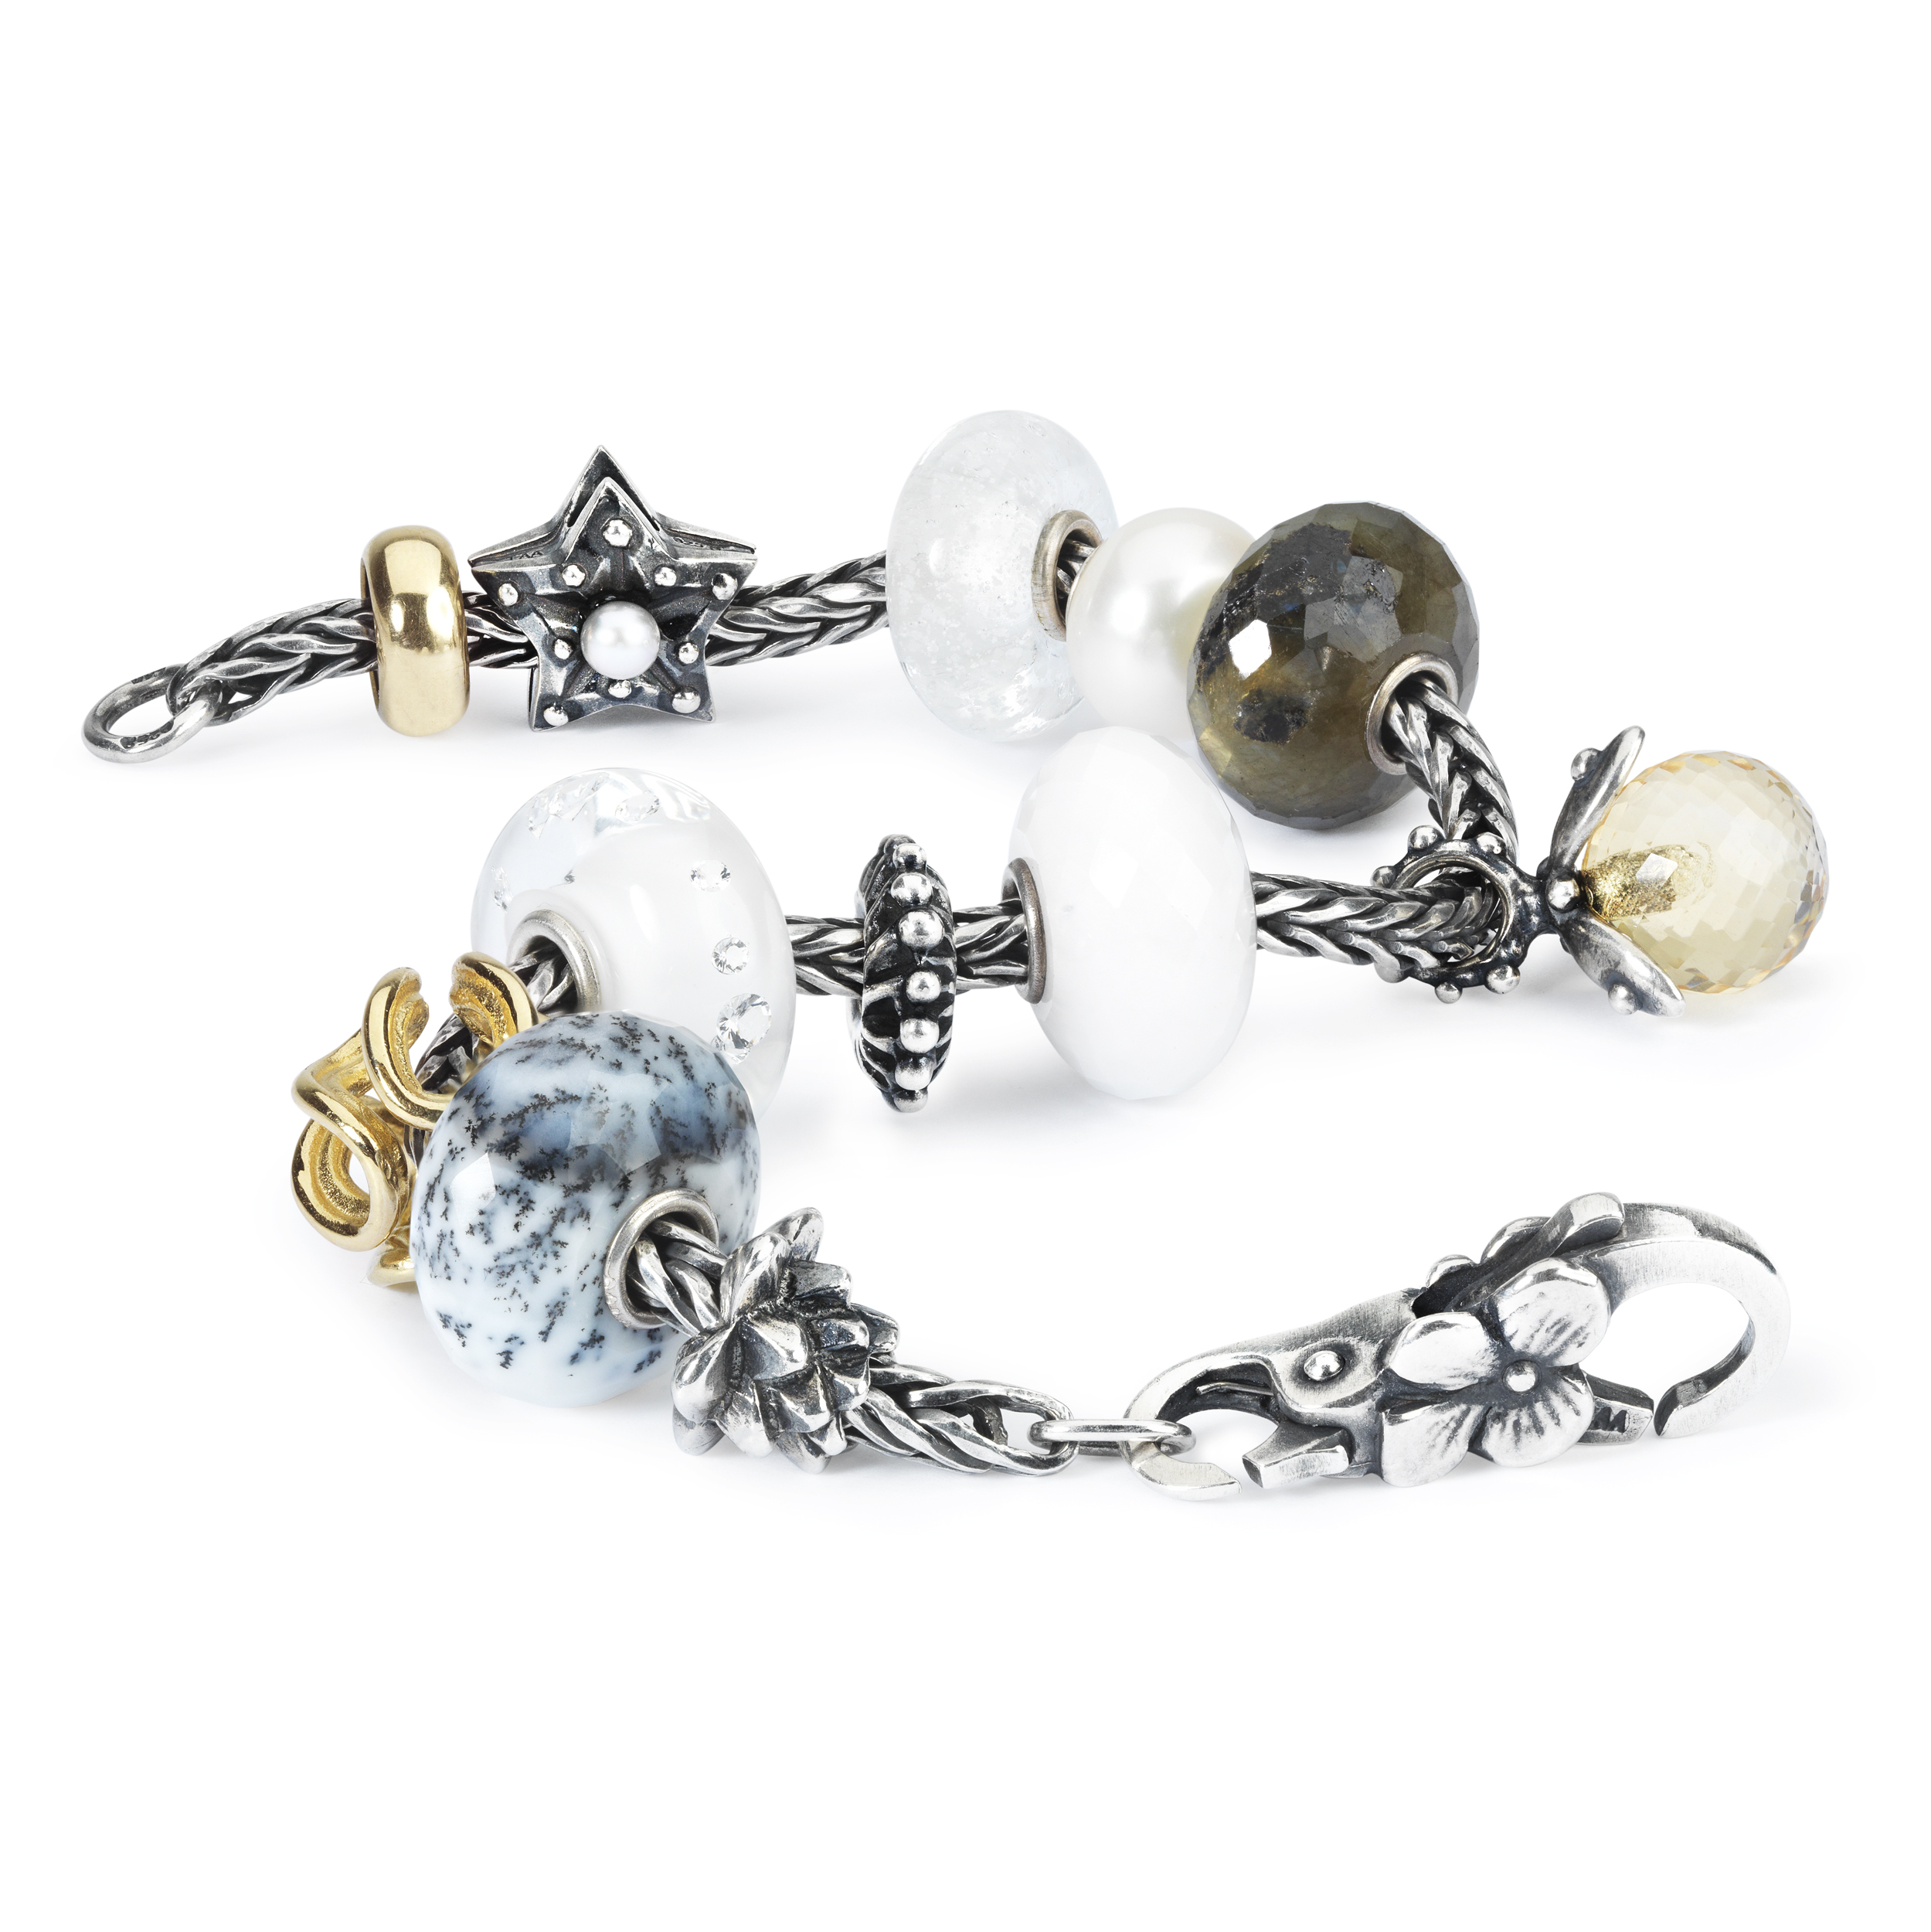 Bracelet of the Month, January